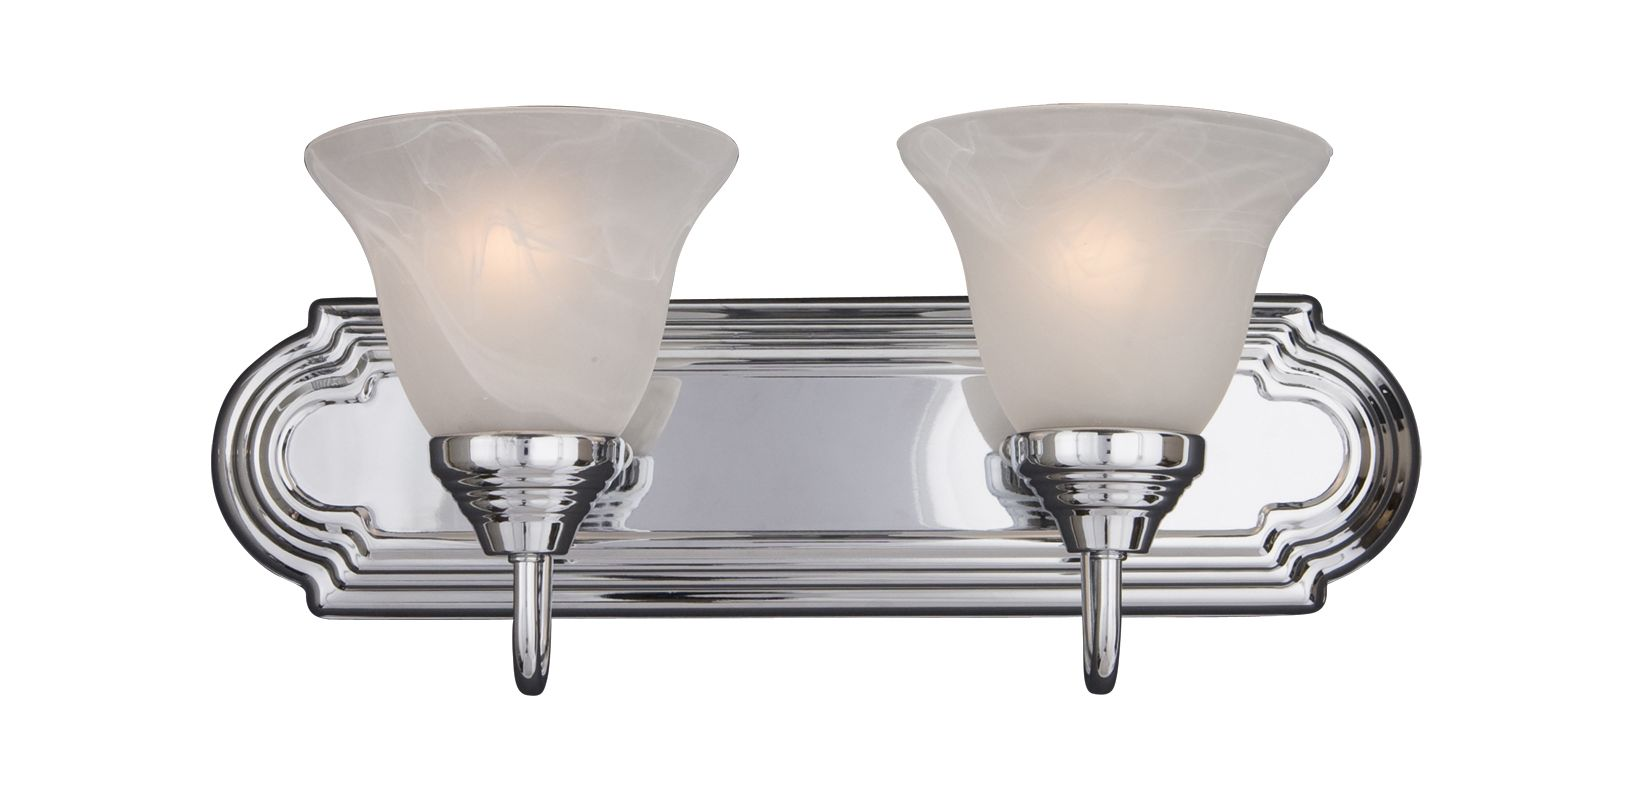 "Maxim 8012 2 Light 18"" Wide Bathroom Fixture from the Essentials -"